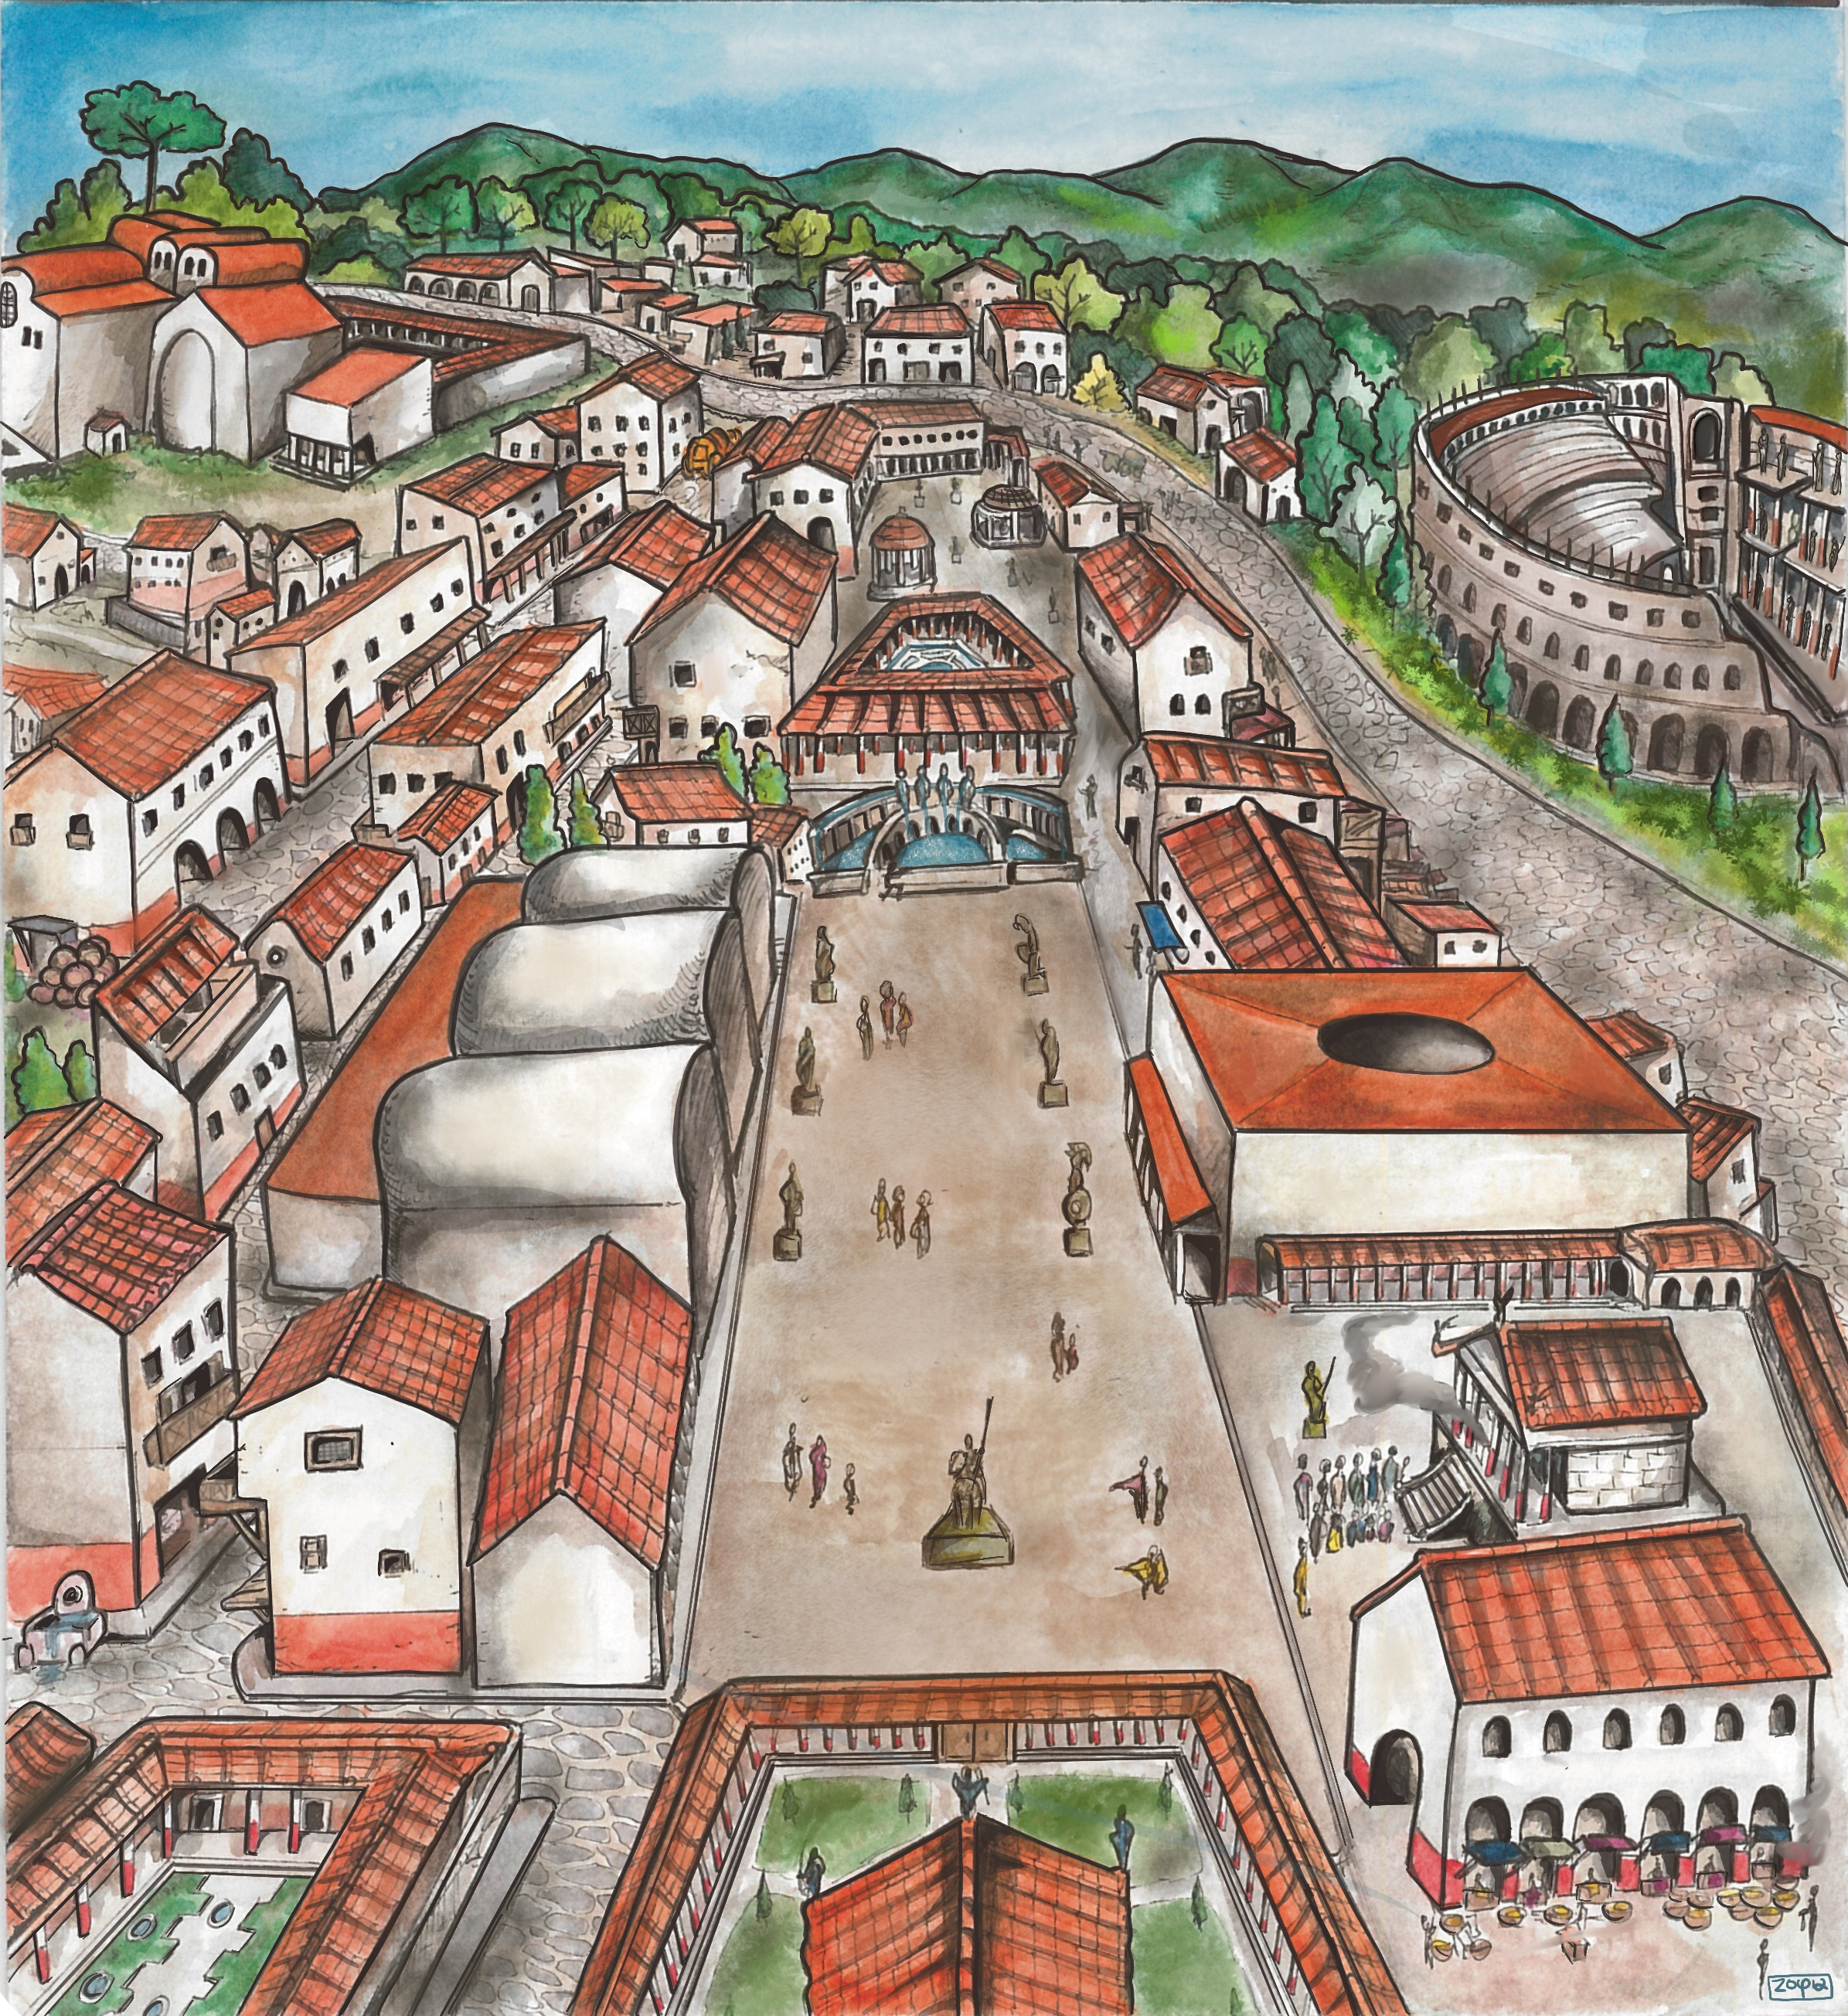 colour drawing of a Roman cityscape from above, with roofs, greenery and roads